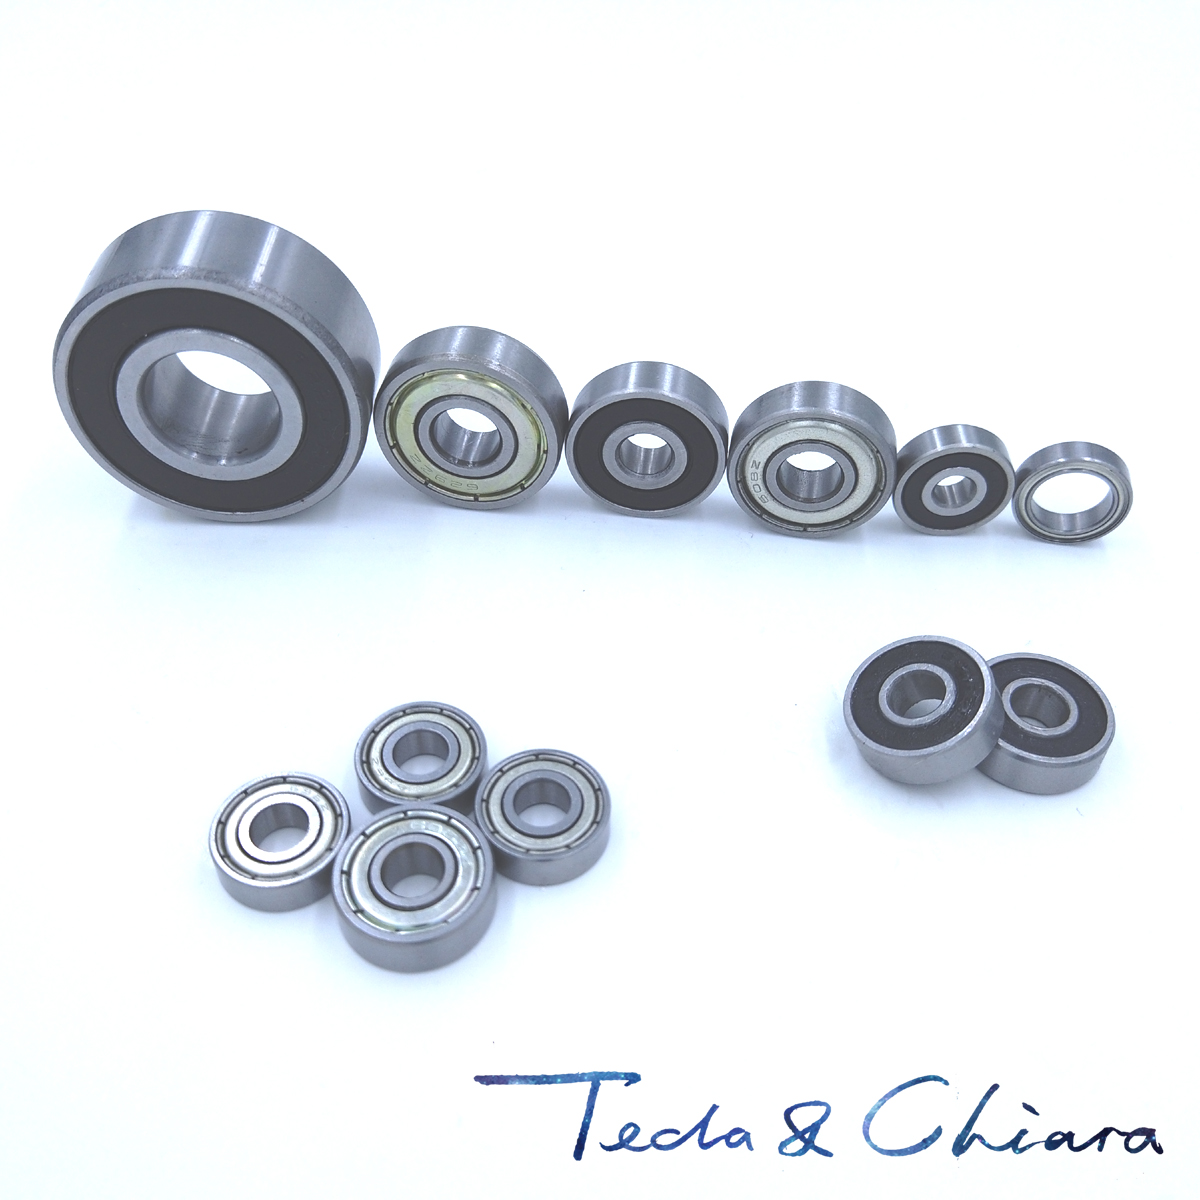 6809 6809ZZ 6809RS 6809-2Z 6809Z 6809-2RS ZZ RS RZ 2RZ Deep Groove Ball Bearings 45 X 58 X 7mm